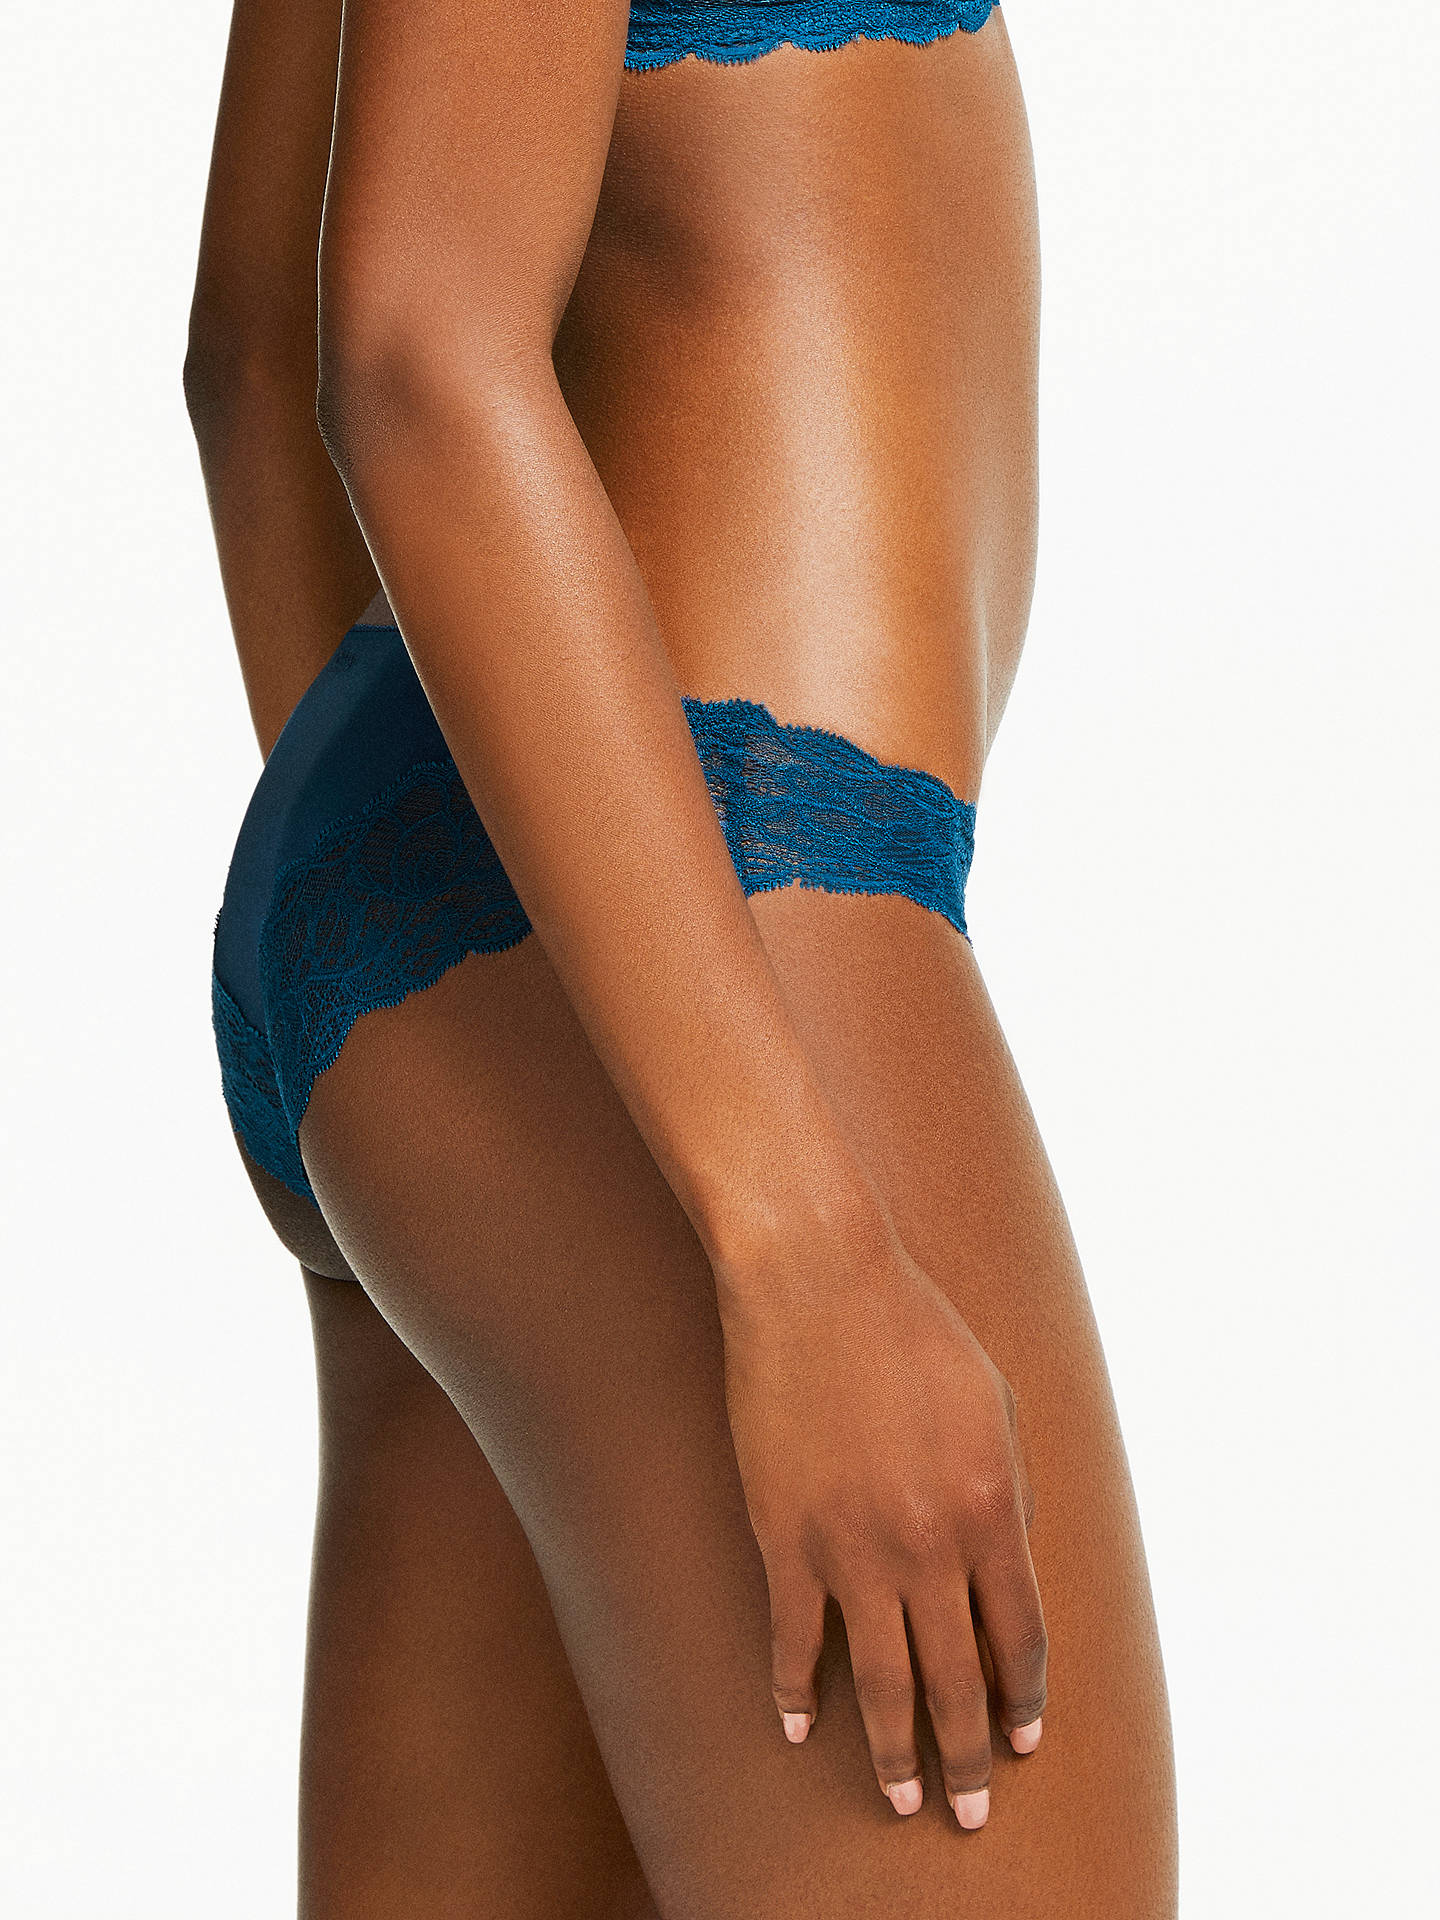 Buy Calvin Klein Underwear Seductive Comfort Lace Bikini Briefs, Lyria Blue, S Online at johnlewis.com